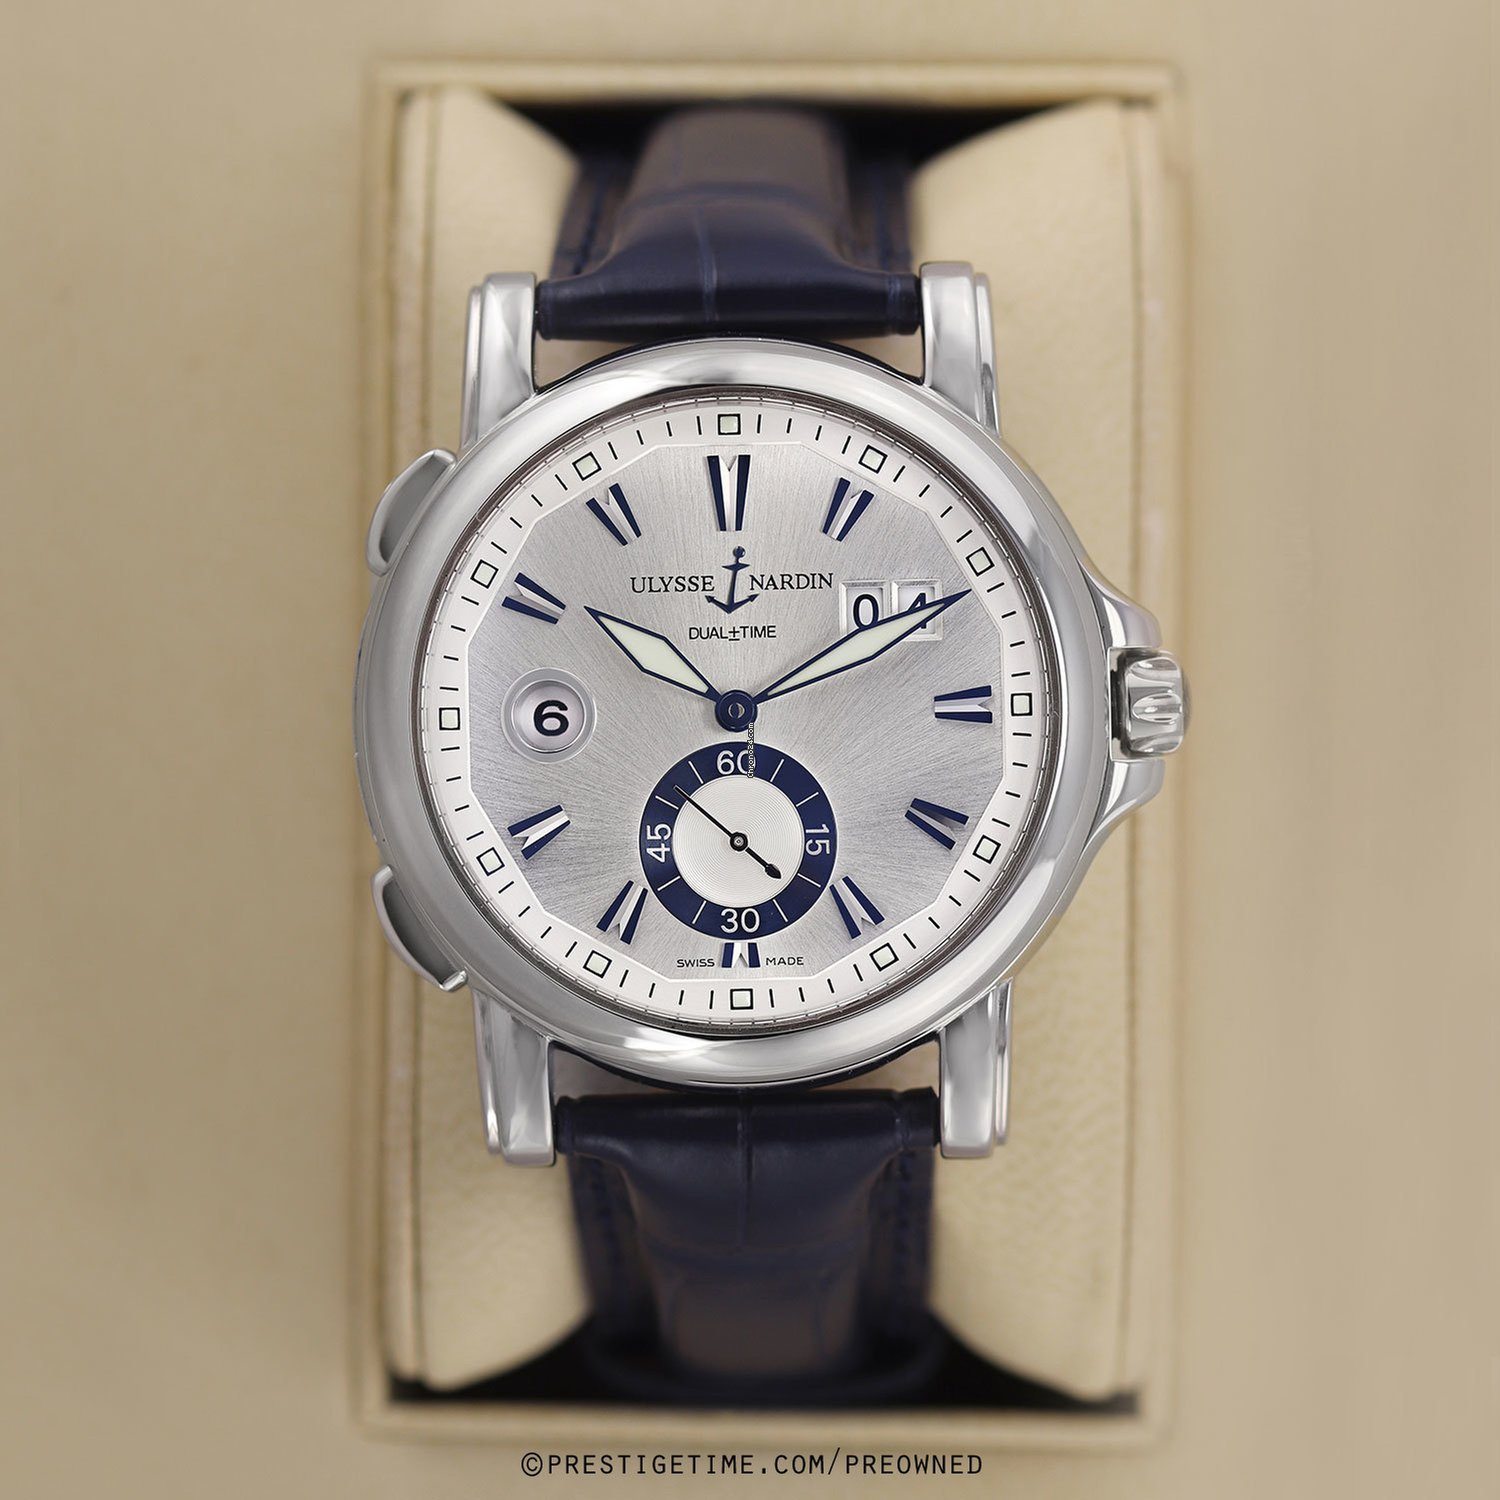 Ulysse Nardin 243-55/91 for Rp  59,139,772 for sale from a